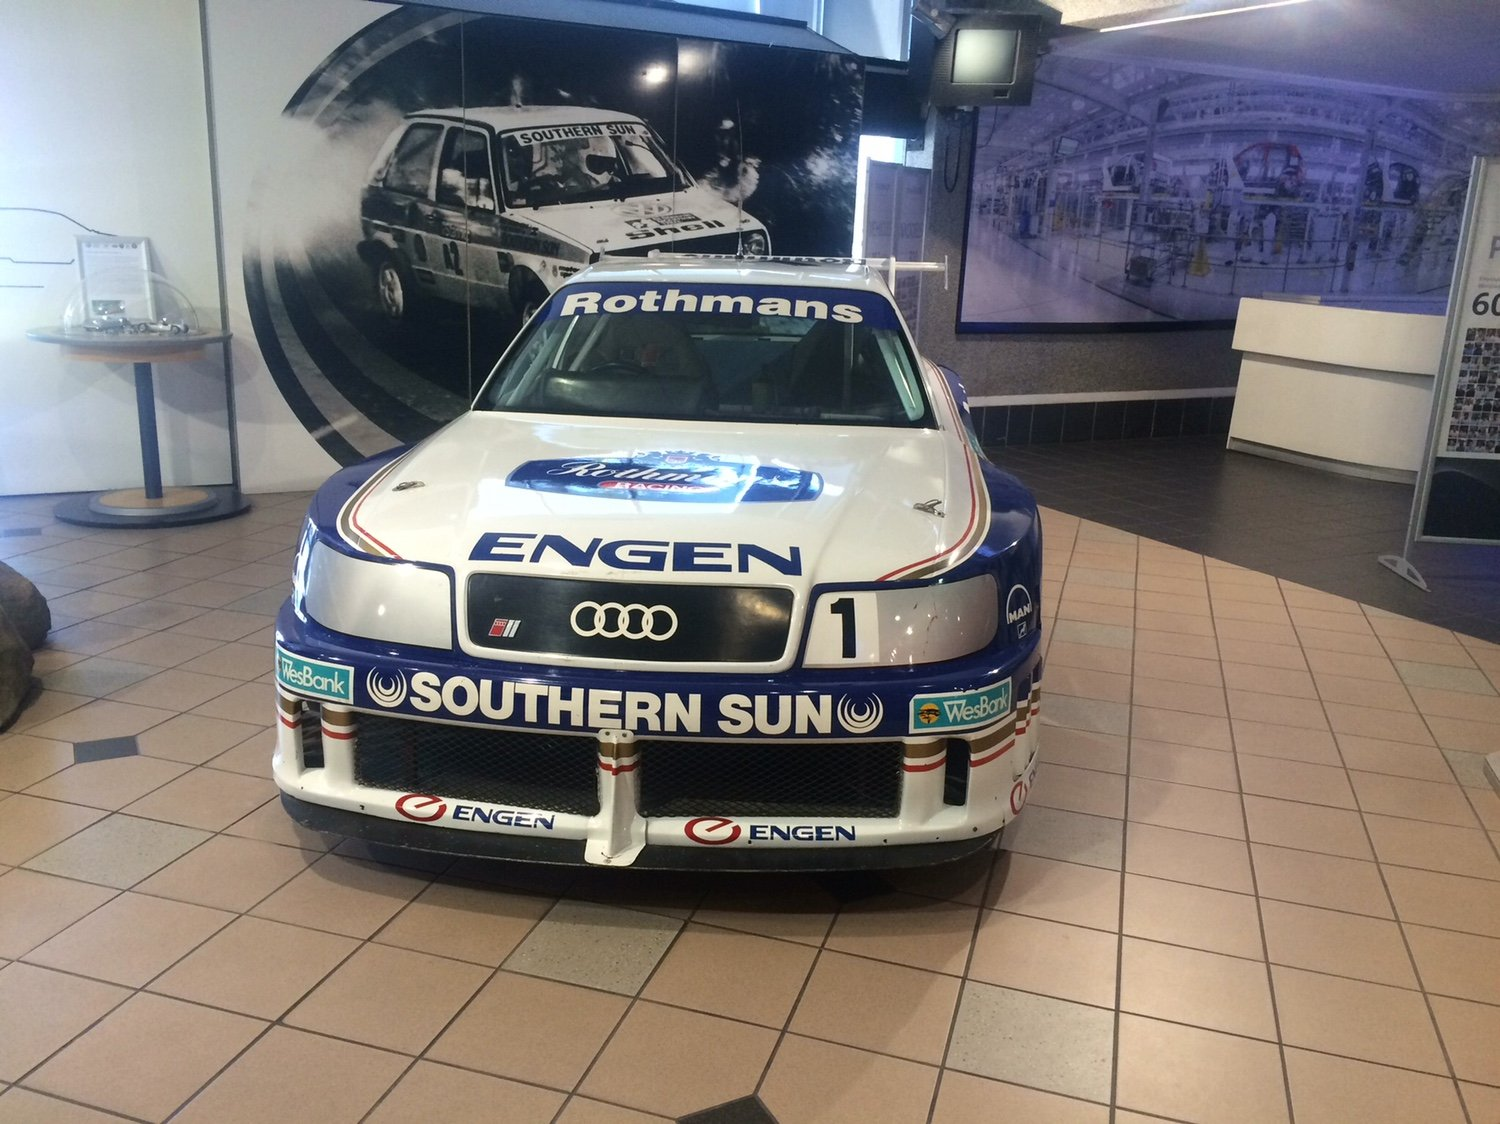 Rothmans Audi A4 B5 Touring Cars The Volkswagen Club Of South Africa